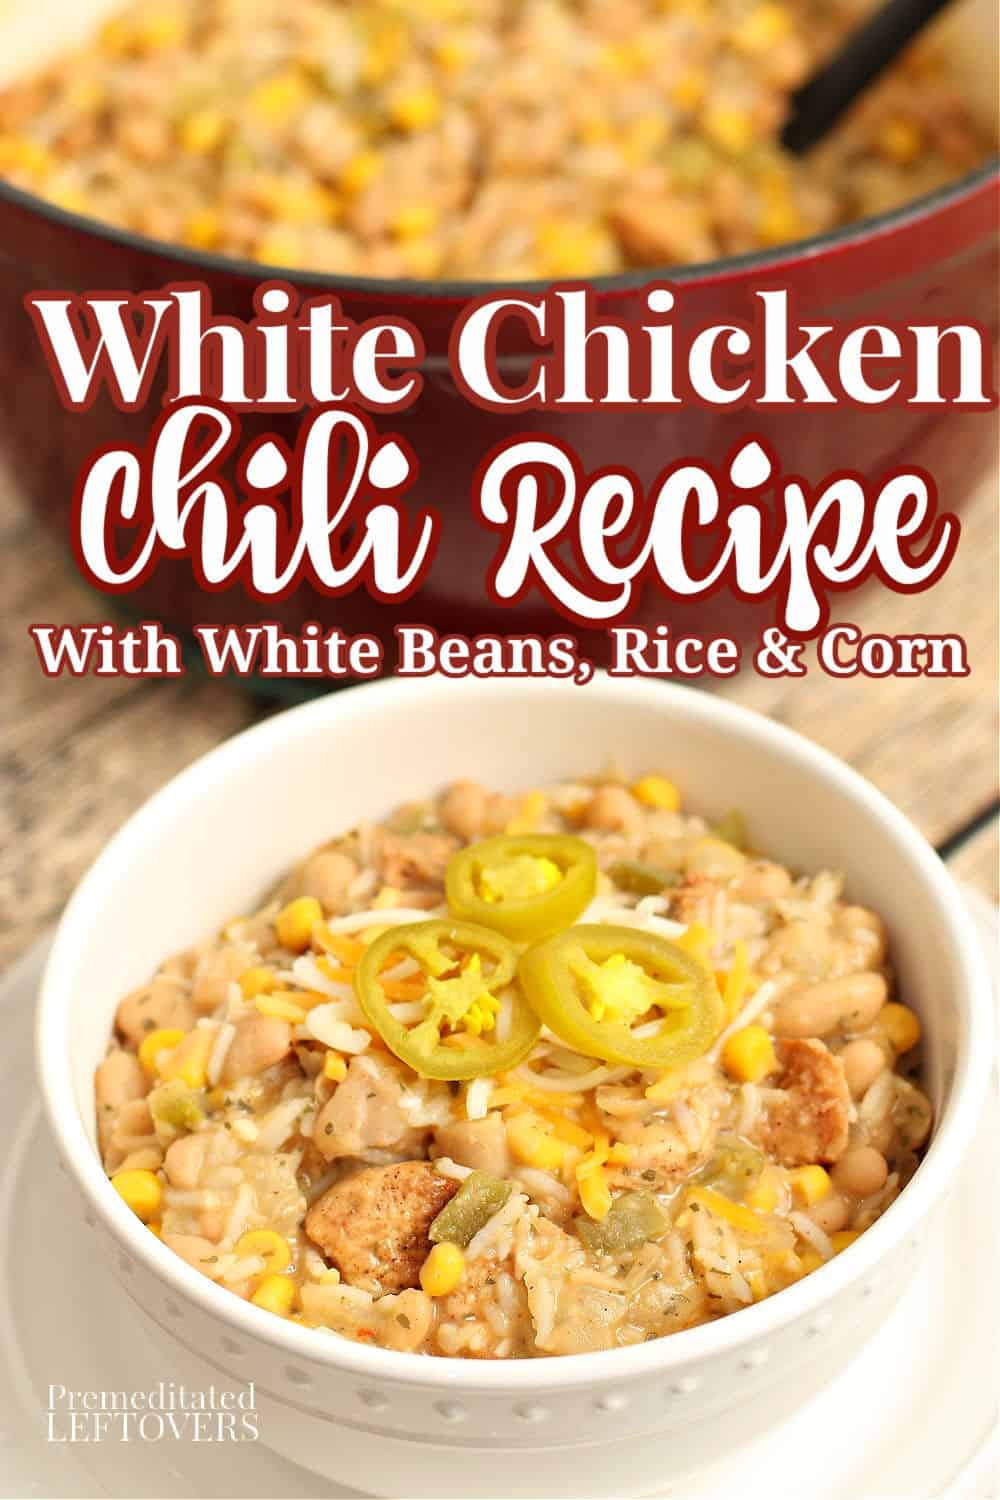 This hearty white chicken chili recipe is made with white beans, chicken, rice, and corn. This homemade white chili is a filling, family-friendly meal! A quick and easy recipe for white chicken chili!